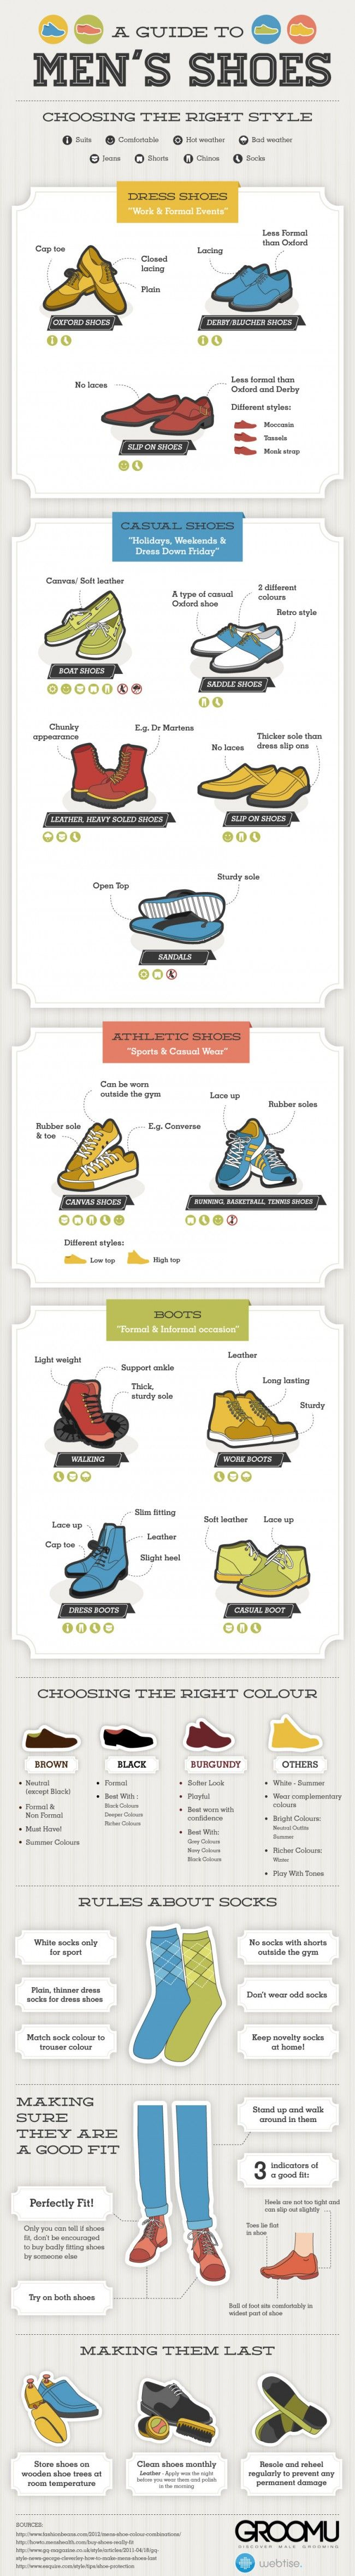 a guide to men's shoe styles